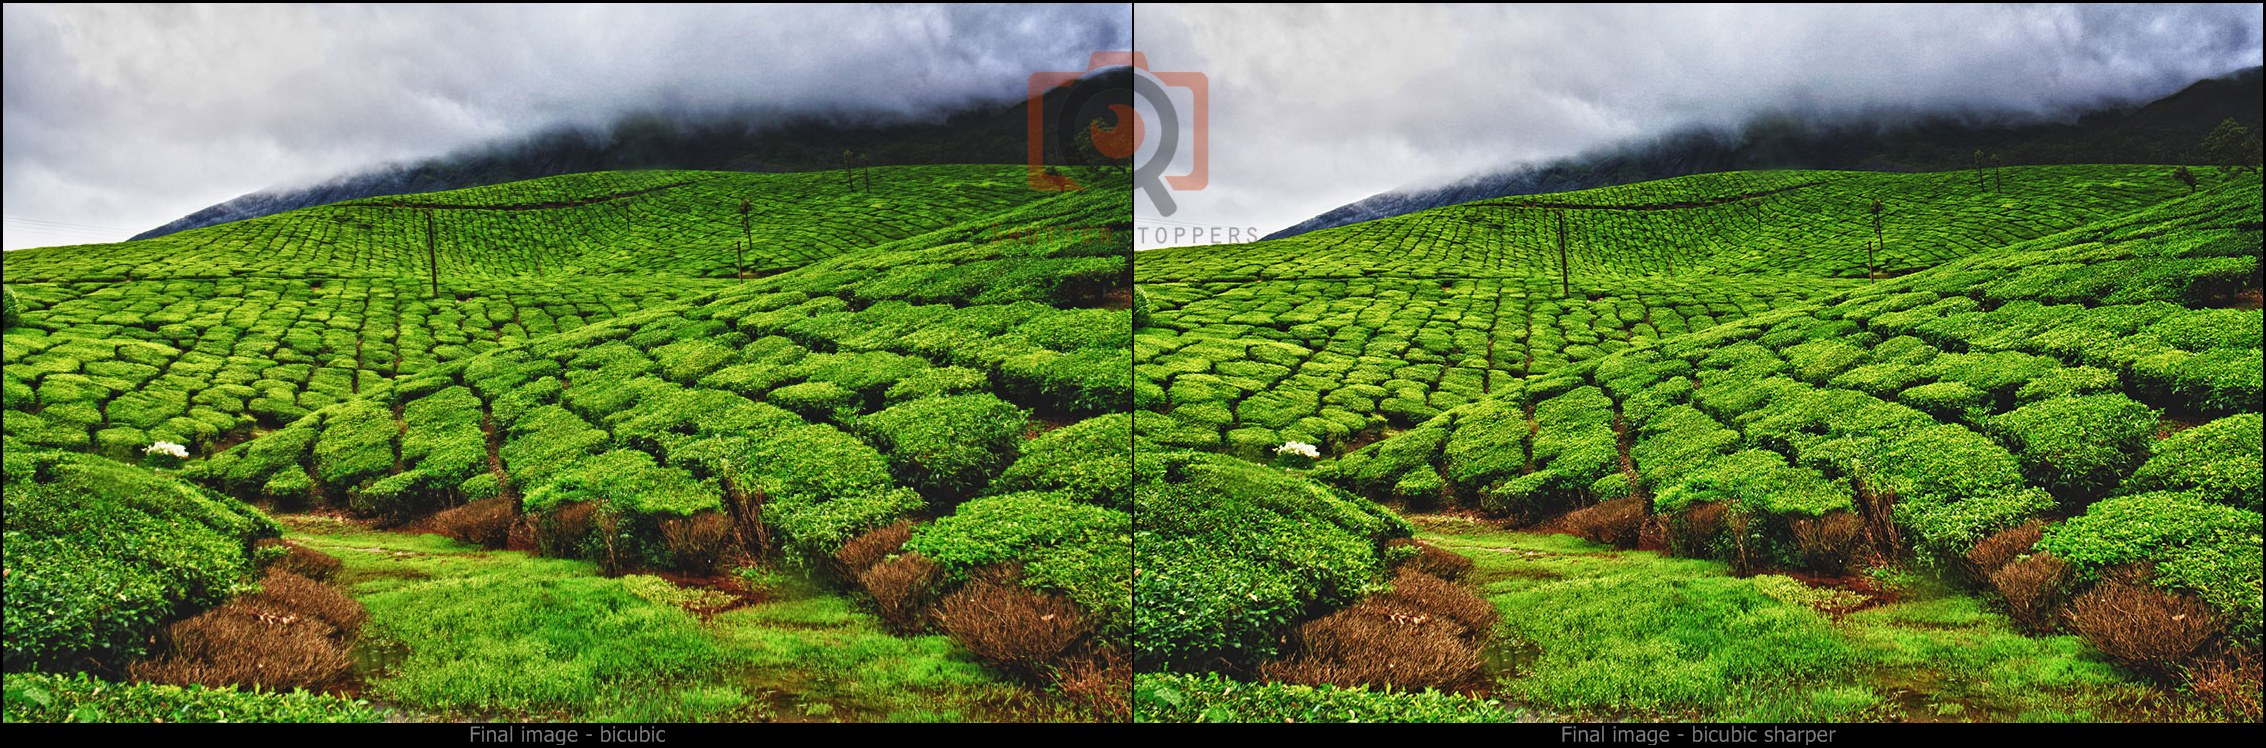 Before and after of image resize in photoshop